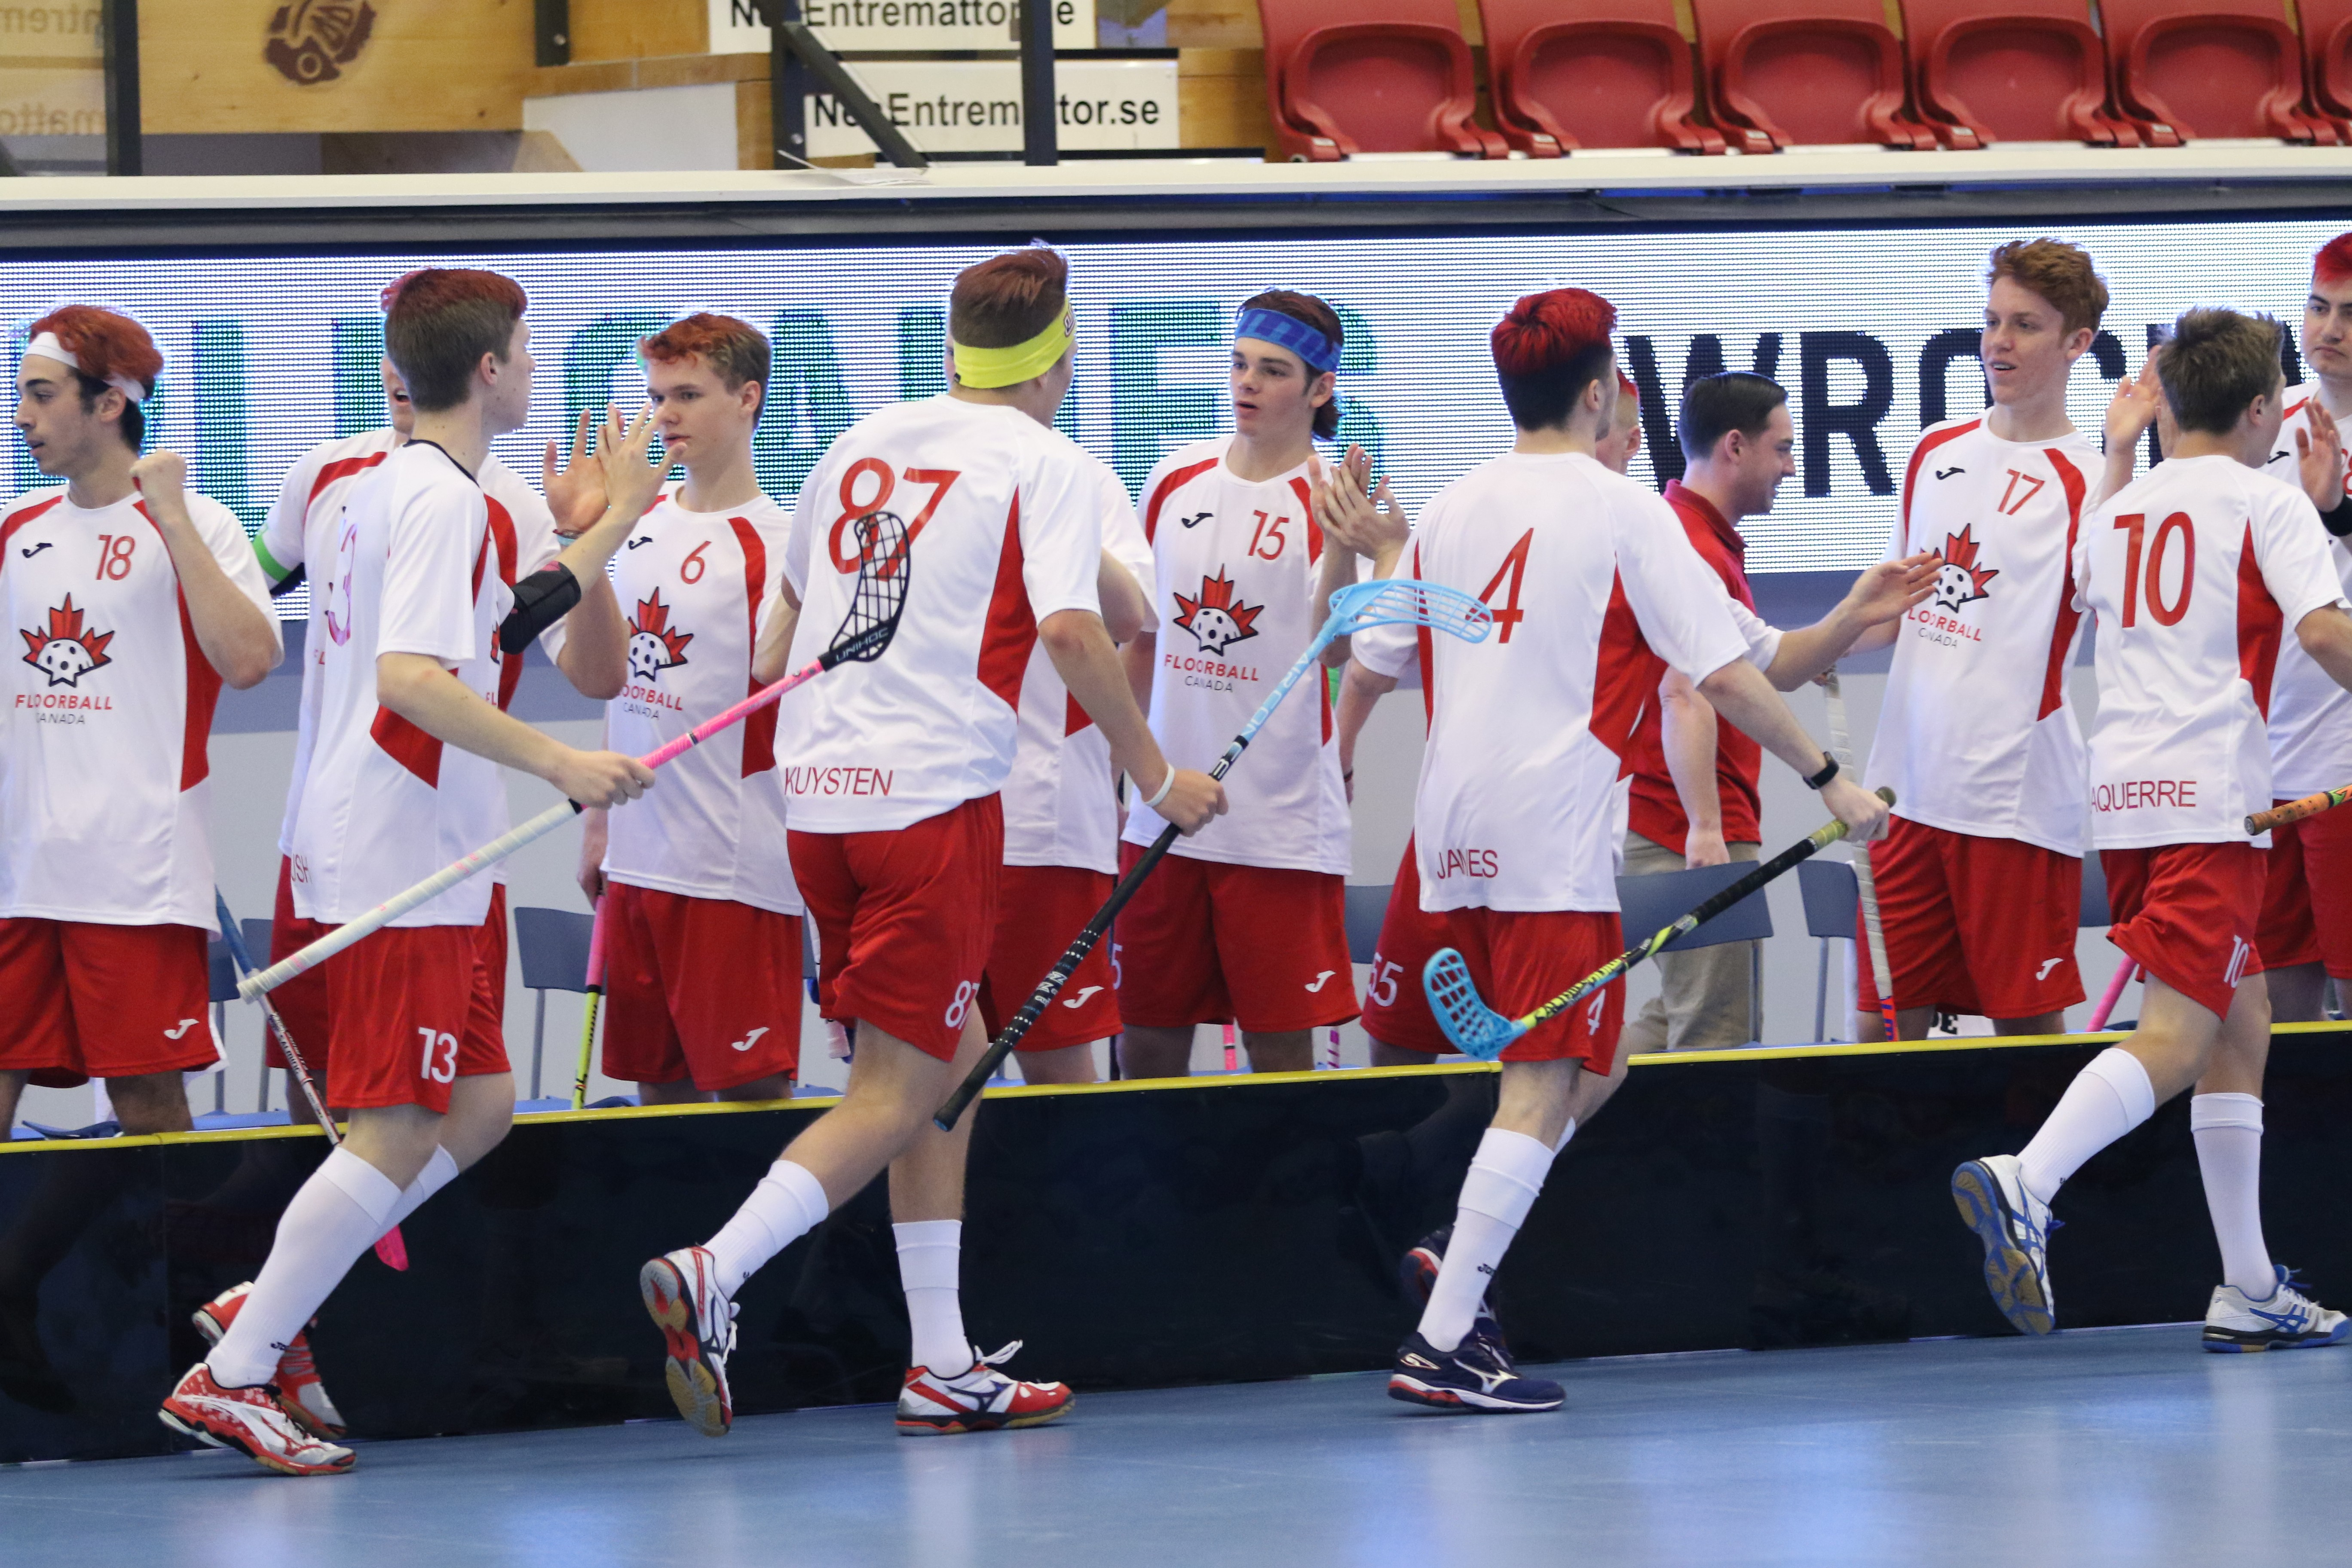 Floorball S World Championship Rolls Into Halifax This Week